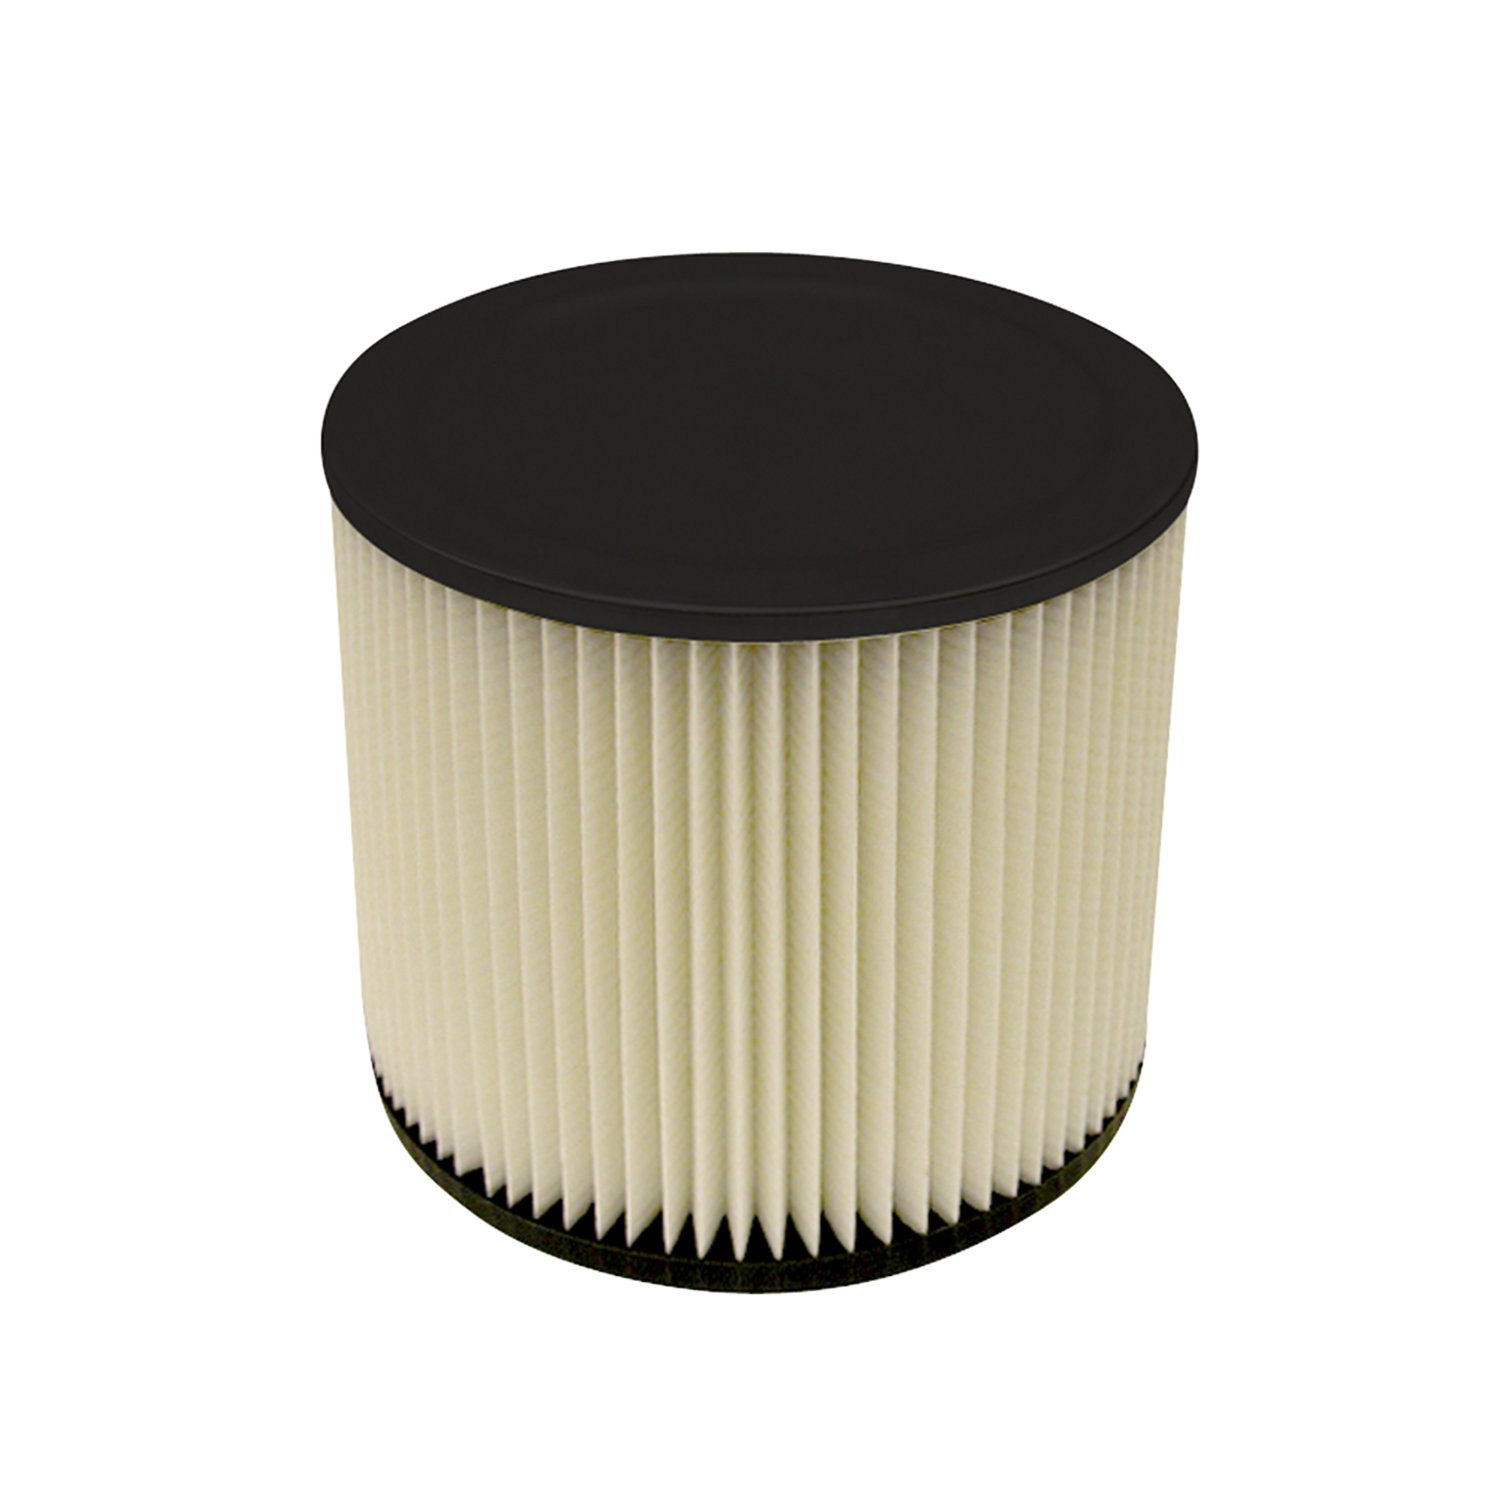 Multi-Fit Wet Dry Vac Filter VF2007 Standard Wet Dry Vacuum Filter (Single Shop Vacuum Cleaner Filter Cartridge) Fits Most 5-Gallon or Larger Shop-Vac, VacMaster and Genie Shop Vacuum Cleaners by WORKSHOP Wet/Dry Vacs